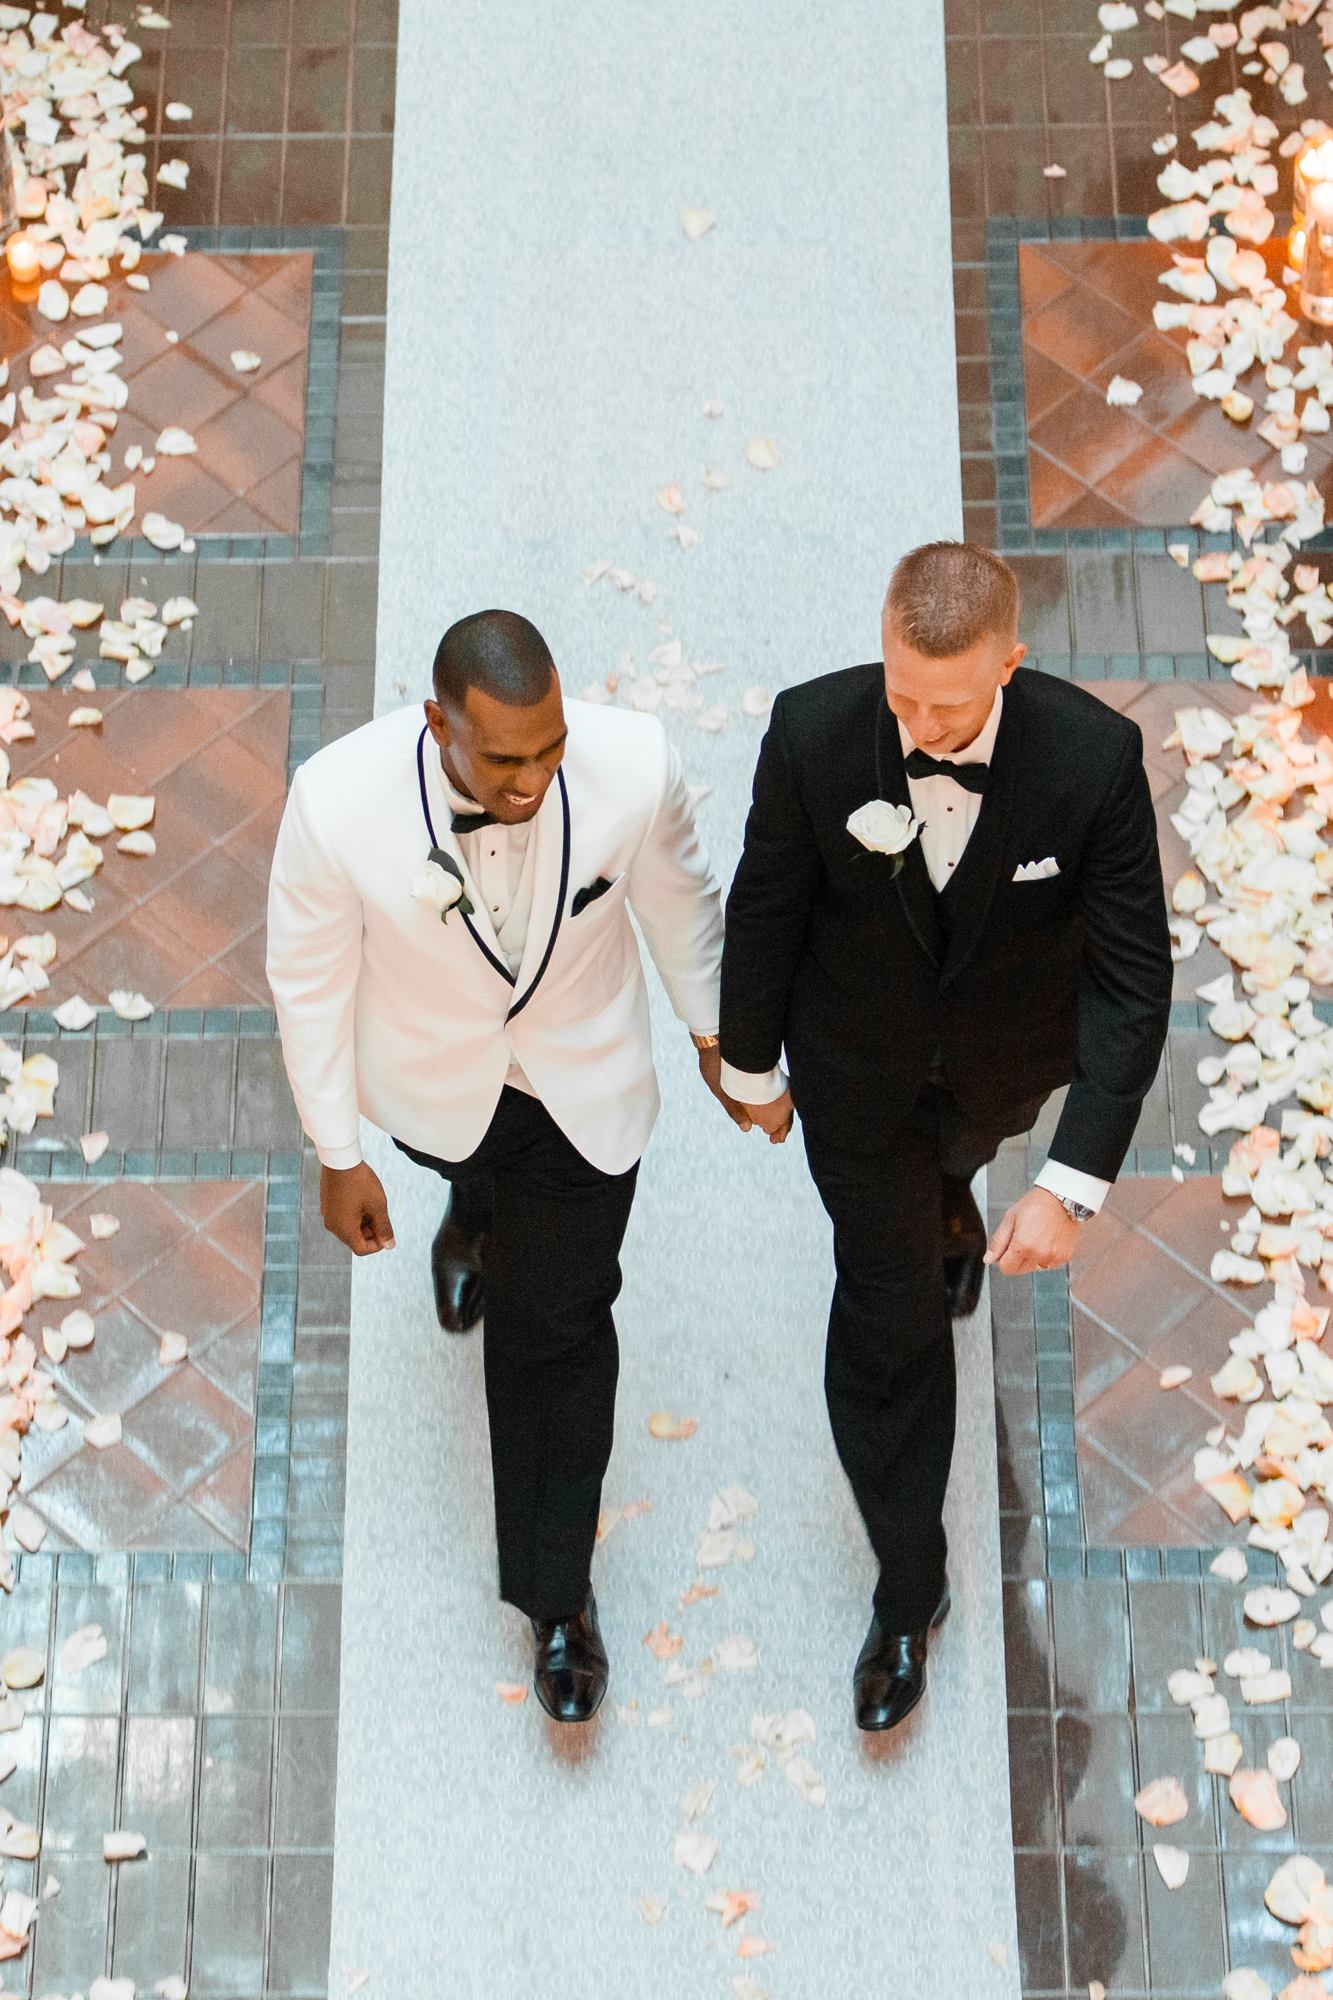 Chris & Antonio's Wedding - J'aime Events